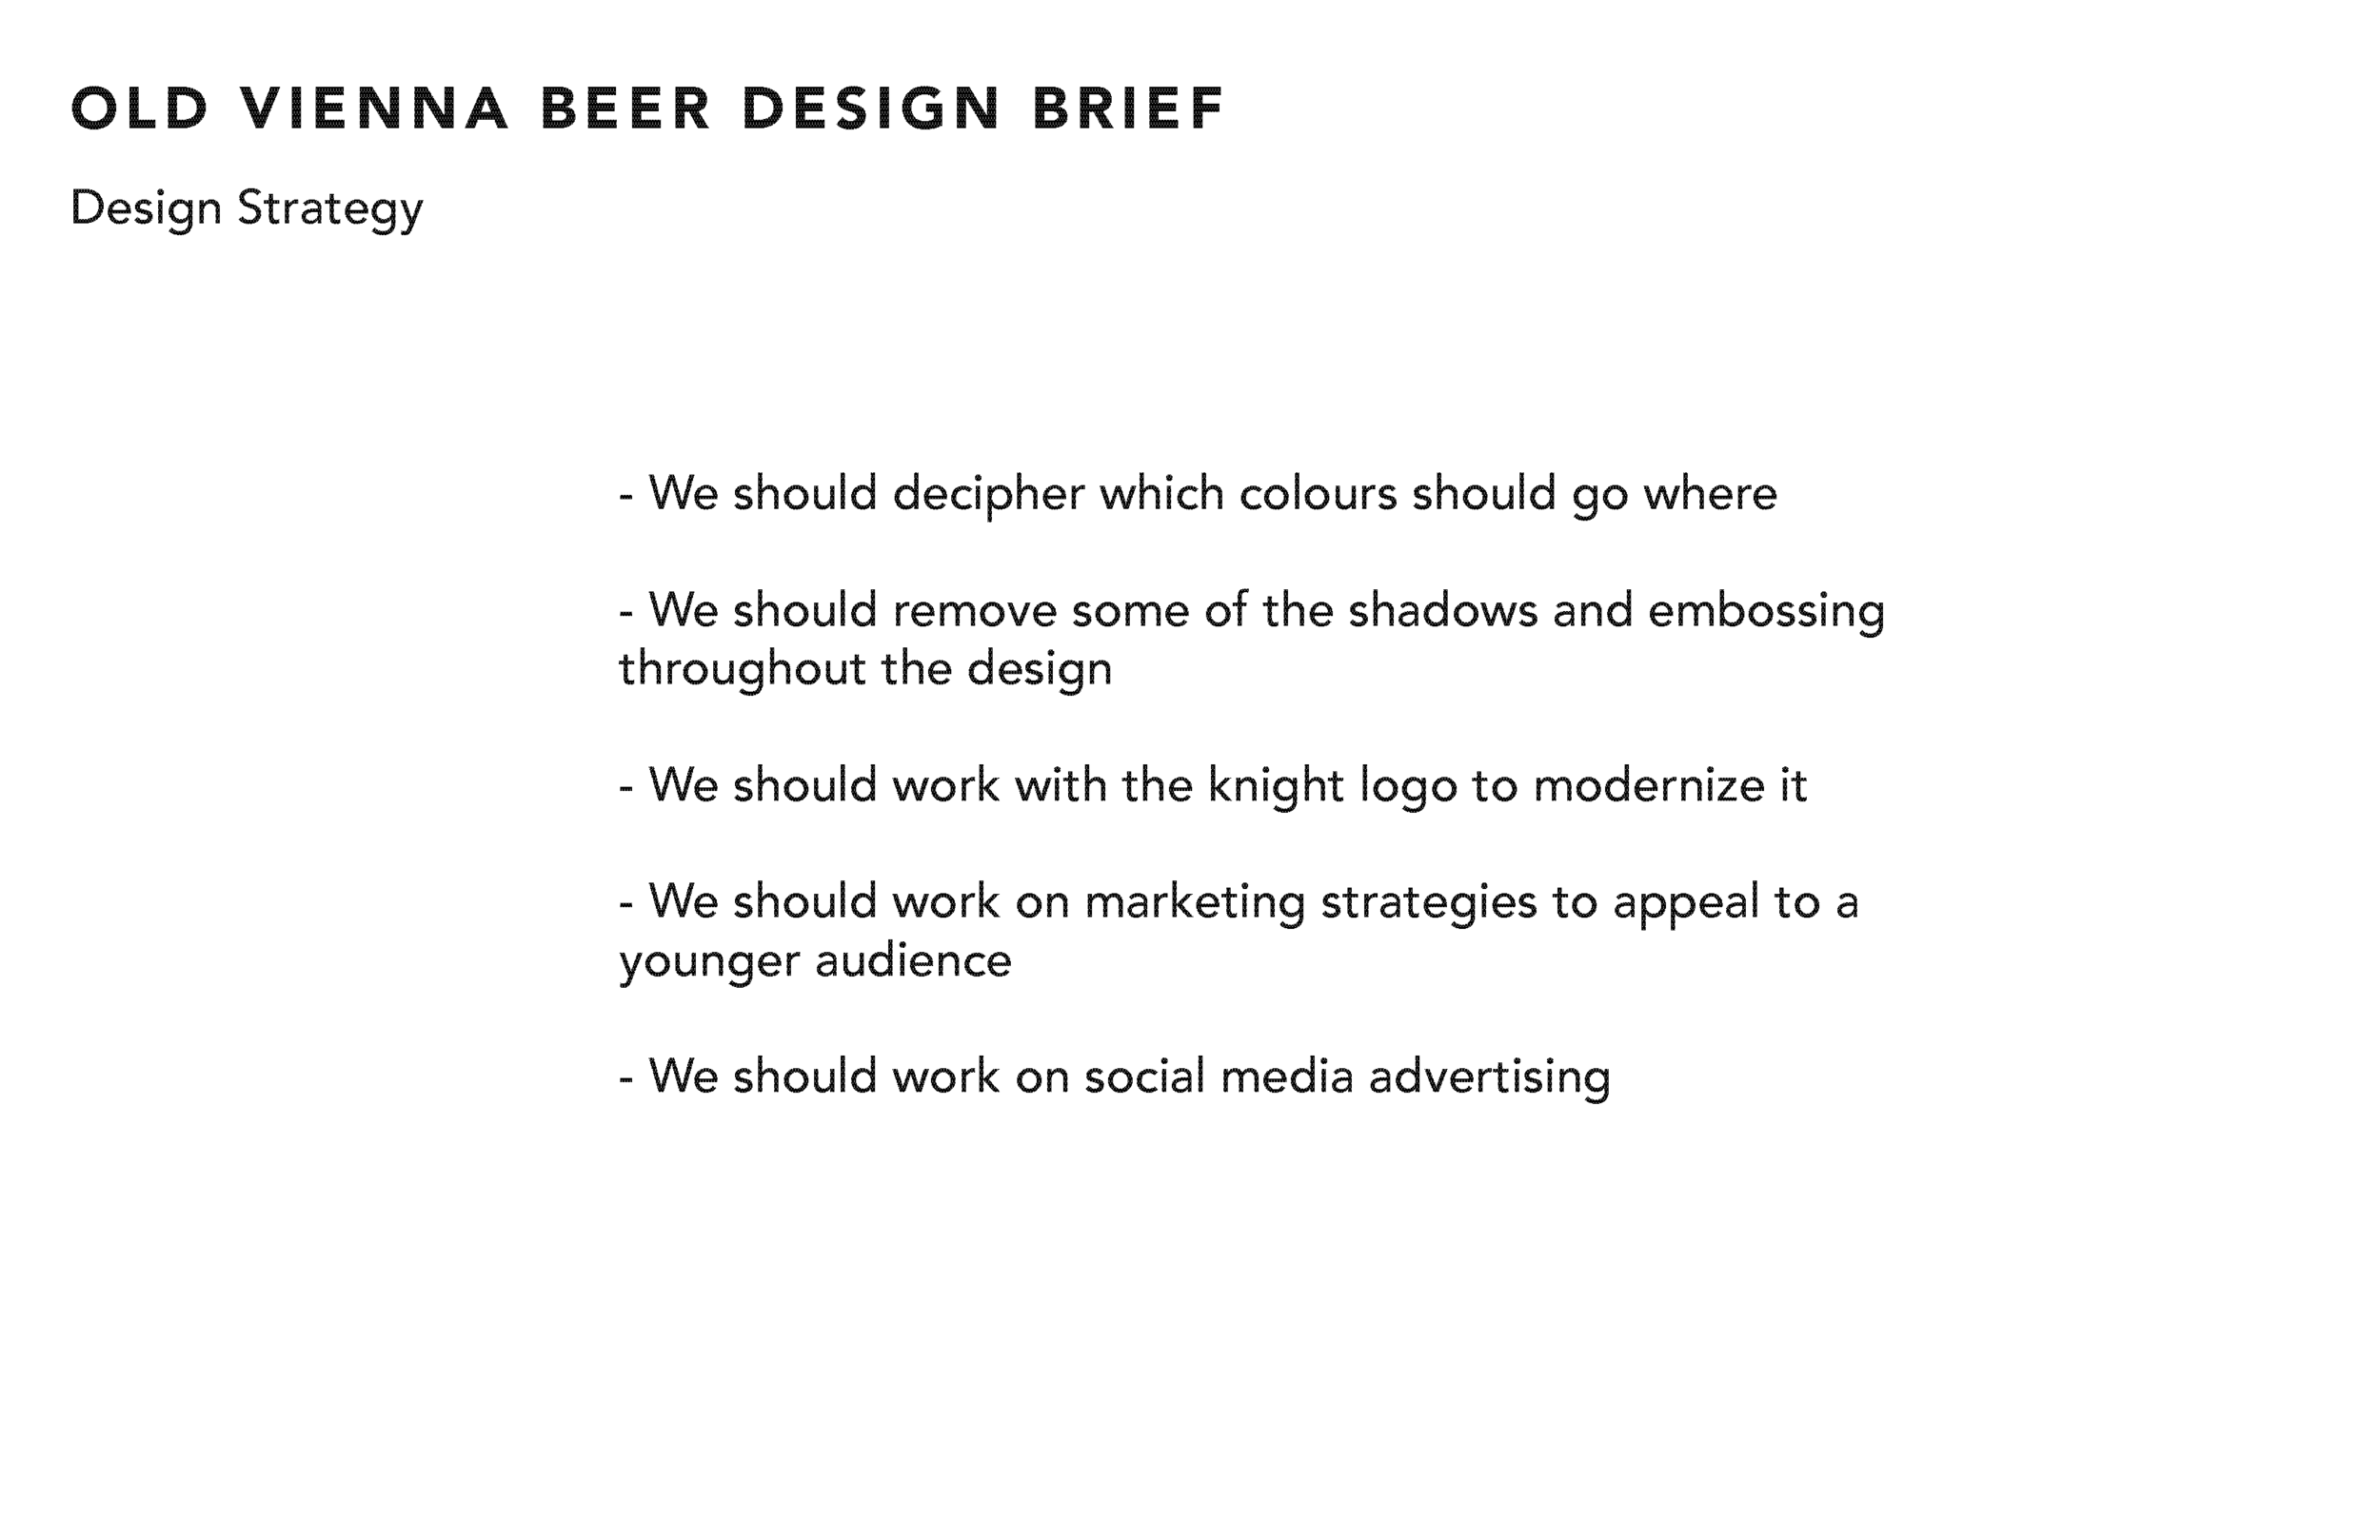 design brief final_Page_11.png